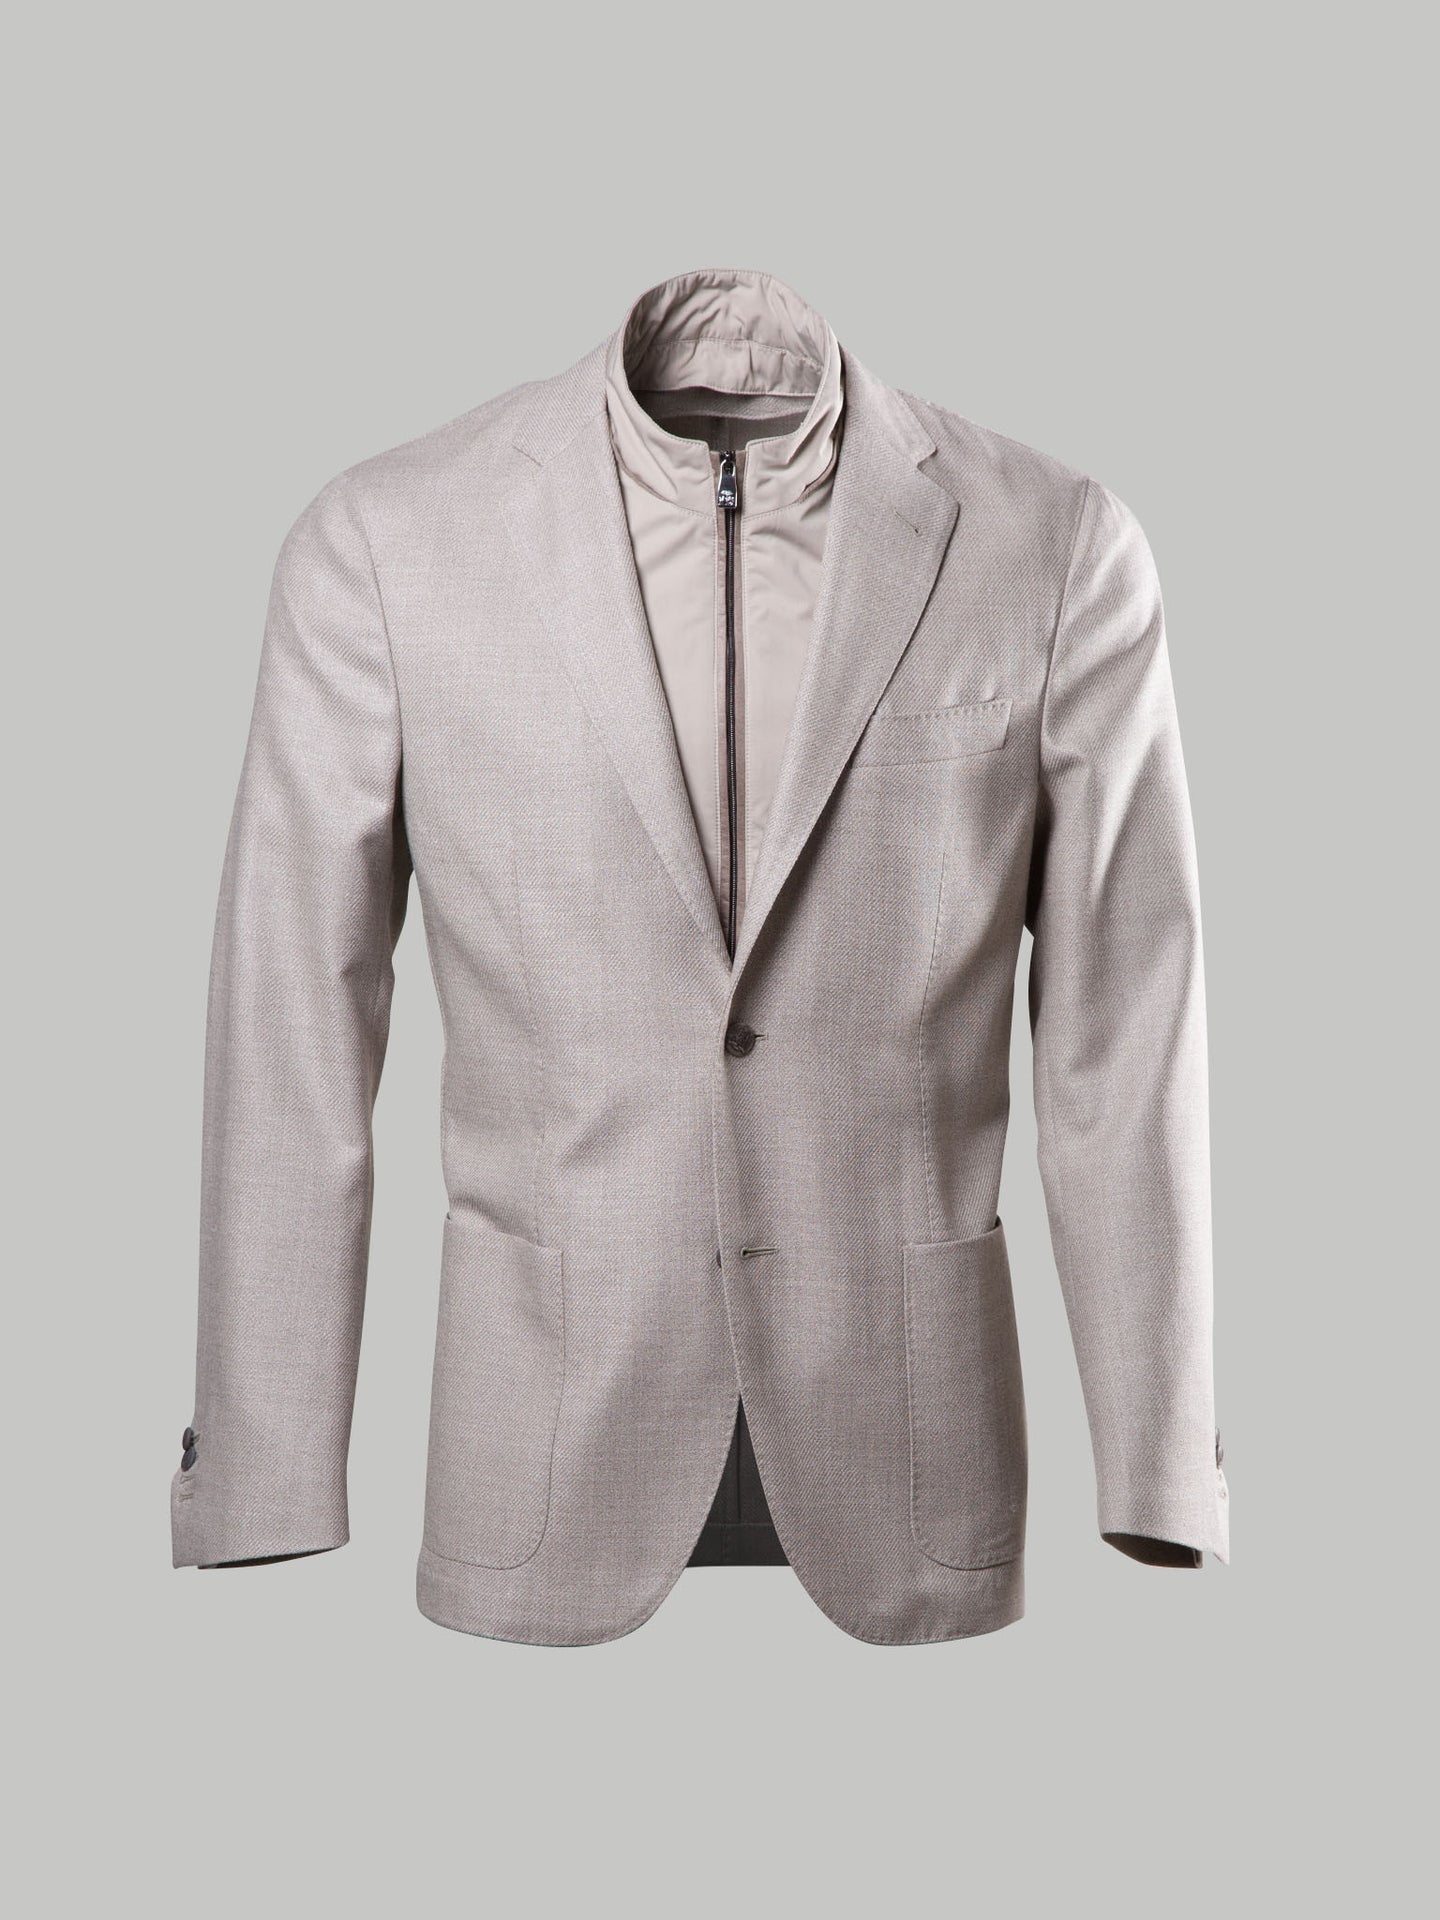 Corneliani Double Vented Light Weight Blazer With Removable Chest Piece (Beige) - Union 22